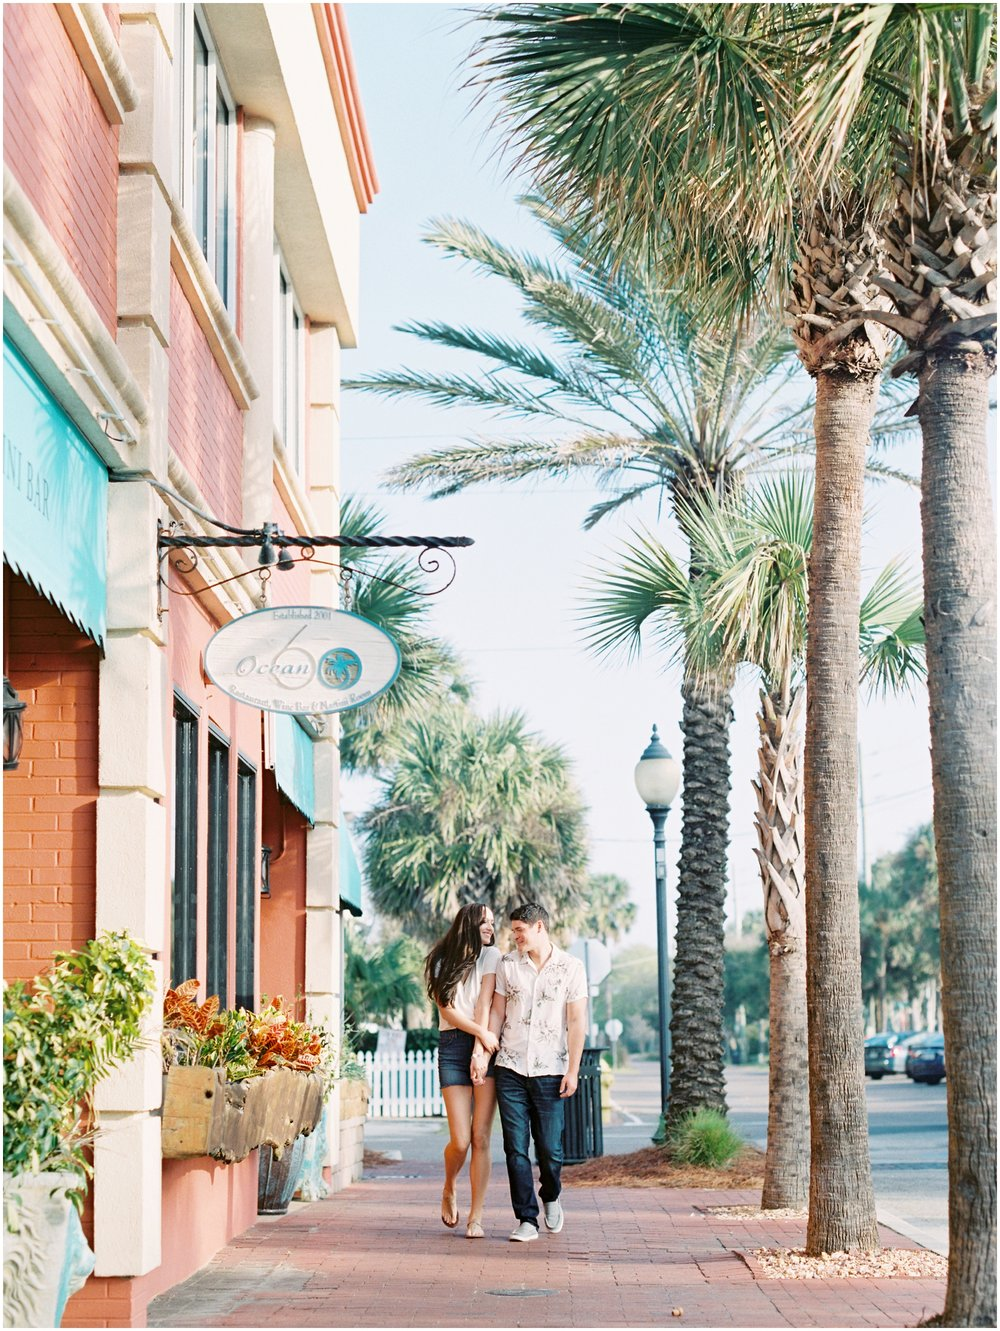 Lisa Silva Photography -Engagement Session at Neptune Beach, Florida- Jacksonville and North East Florida Fine Art Film Photographer_0033.jpg